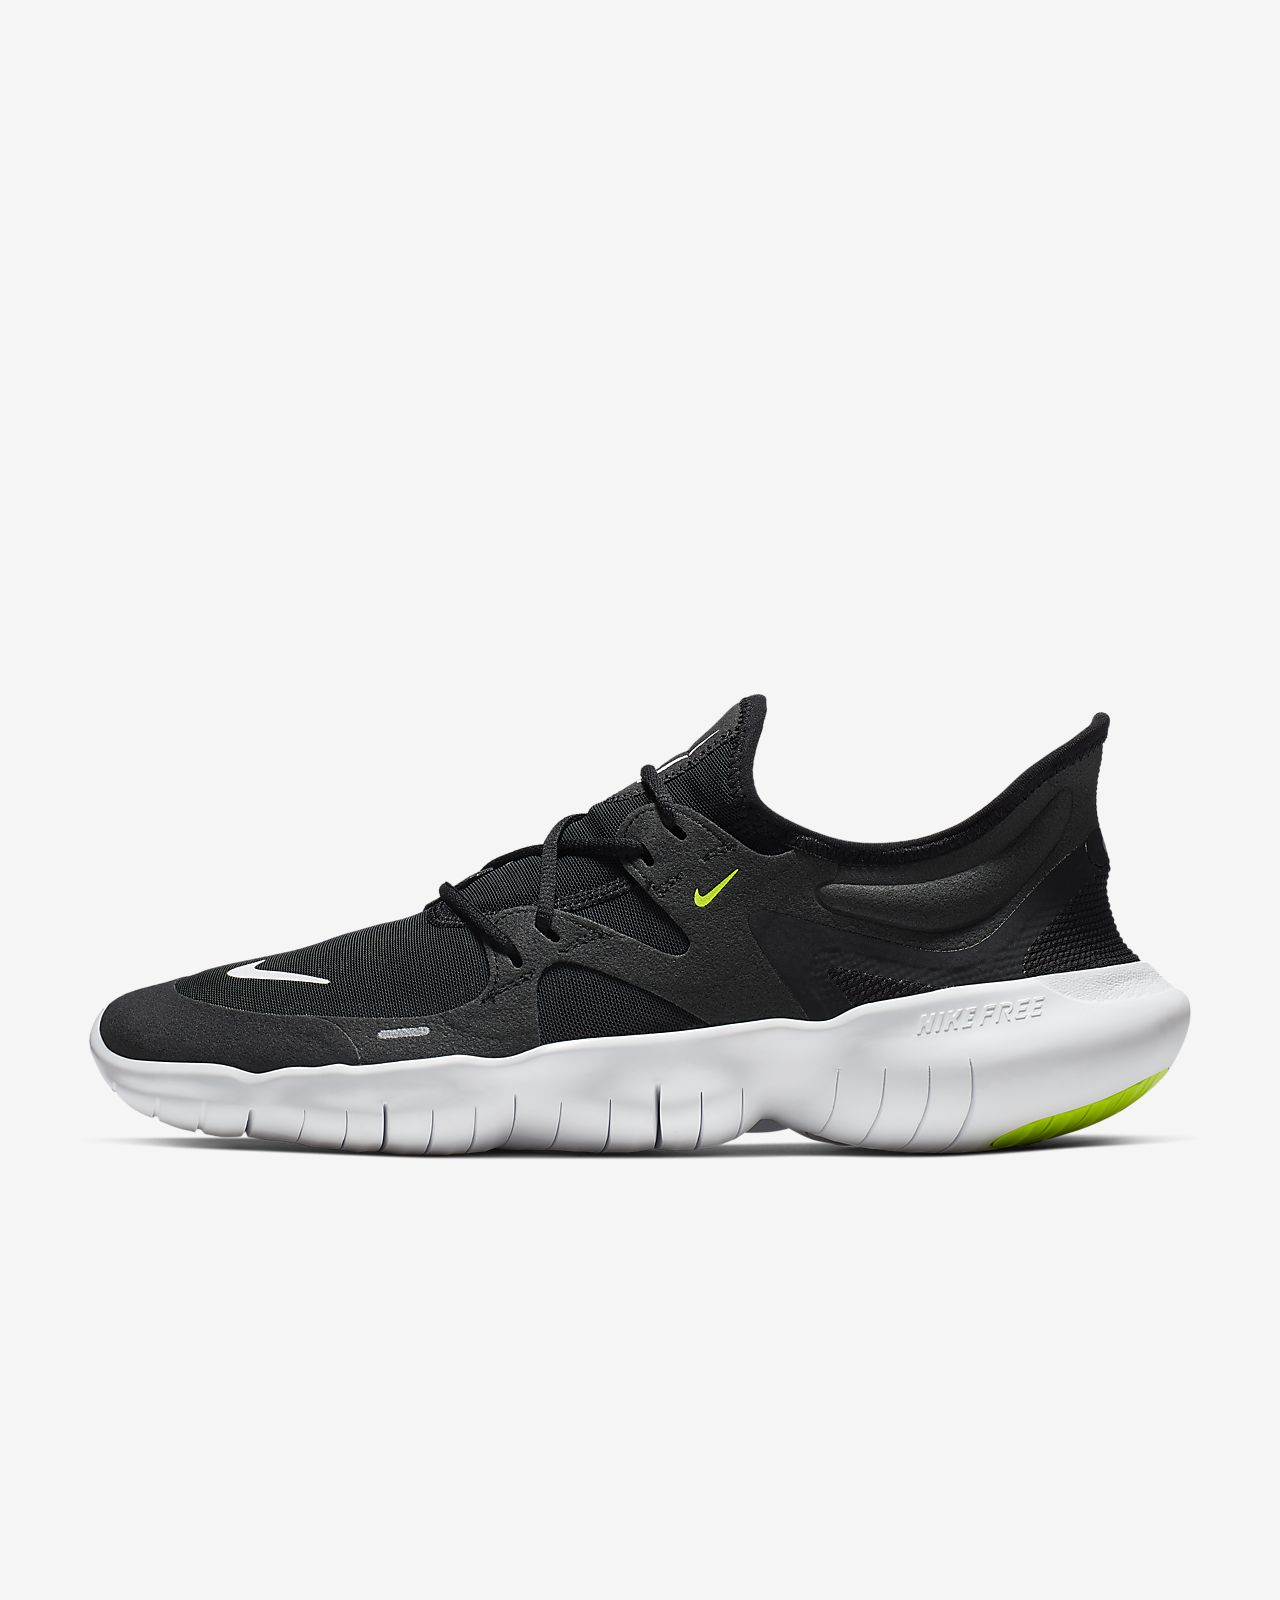 4df96d74 Nike Free RN 5.0 Men's Running Shoe